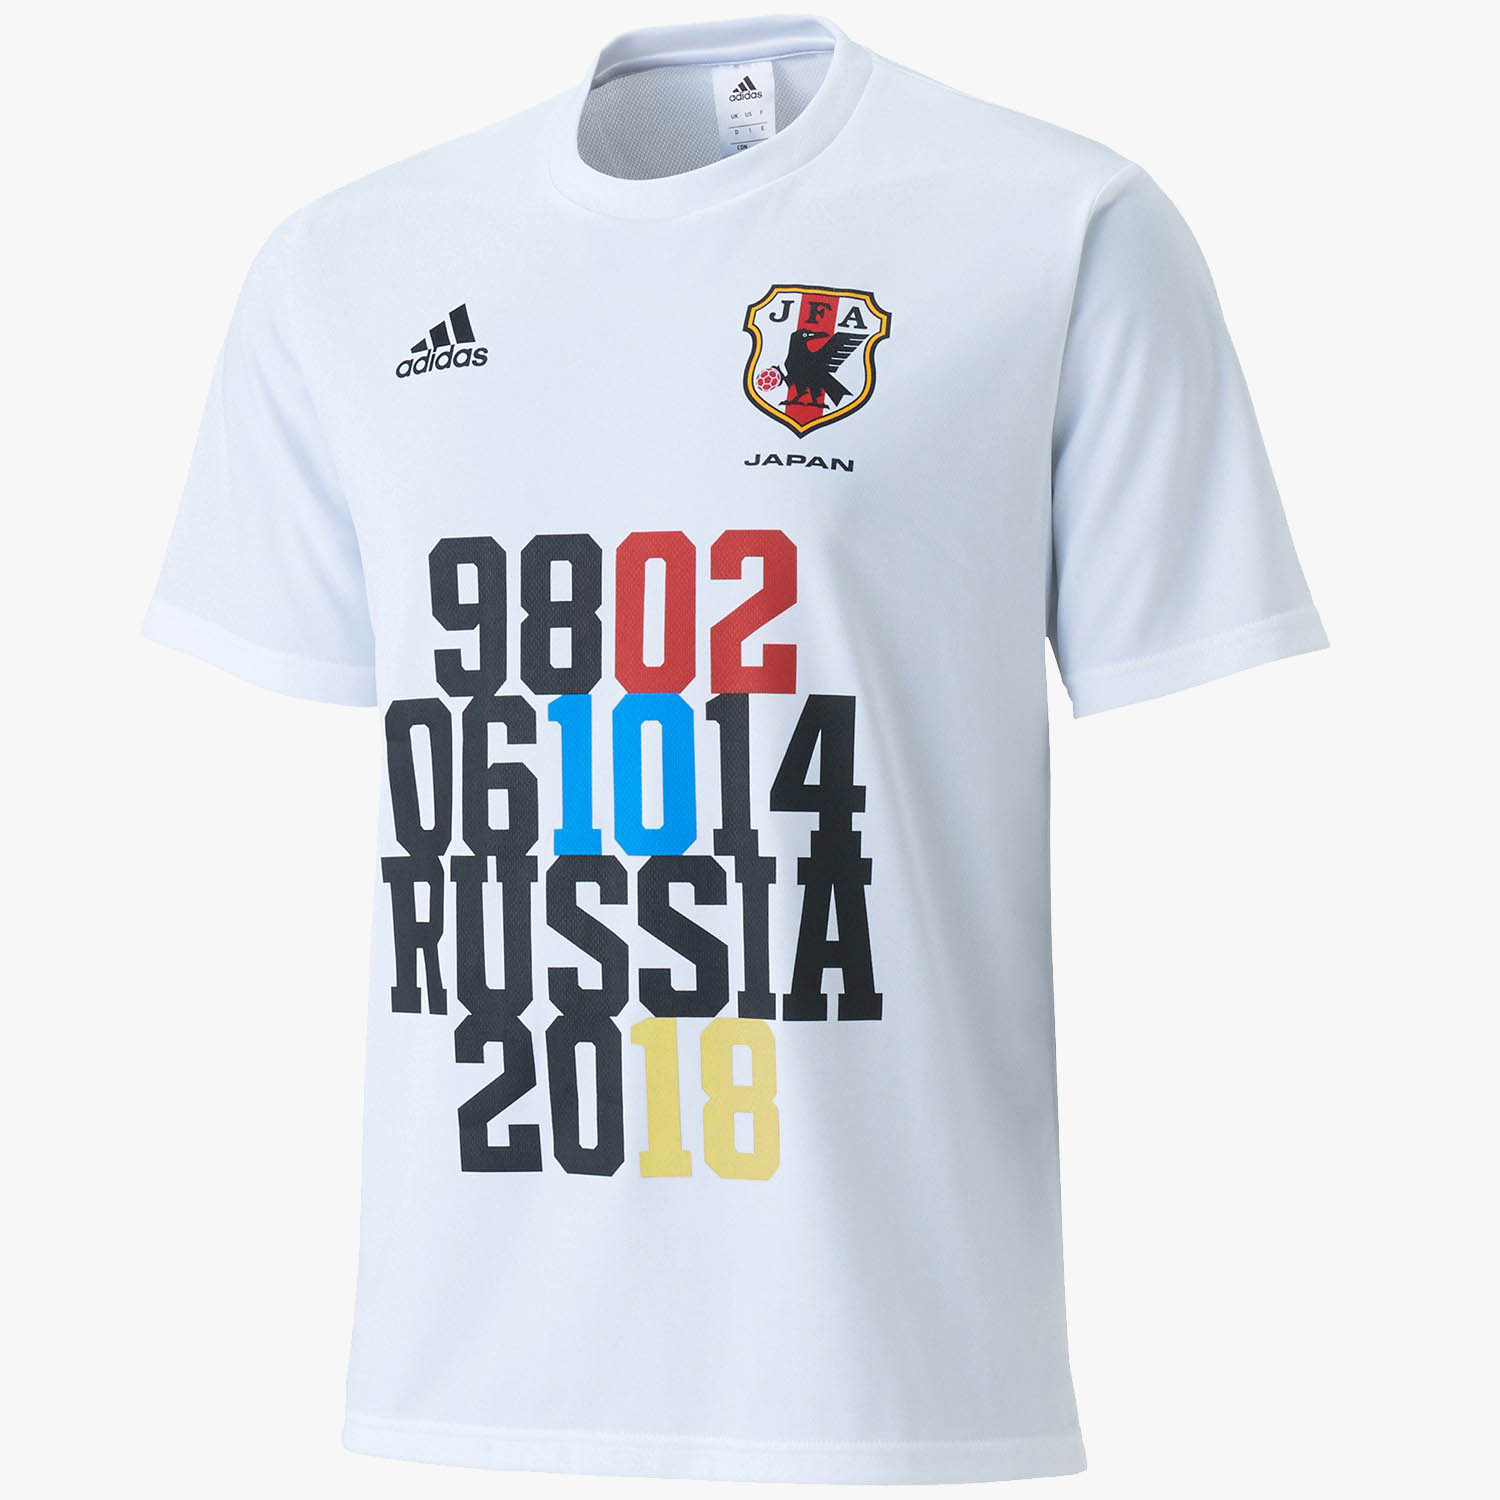 6cd35be7e Discount Adidas Japan 2018 World Cup Qualification Shirt Released